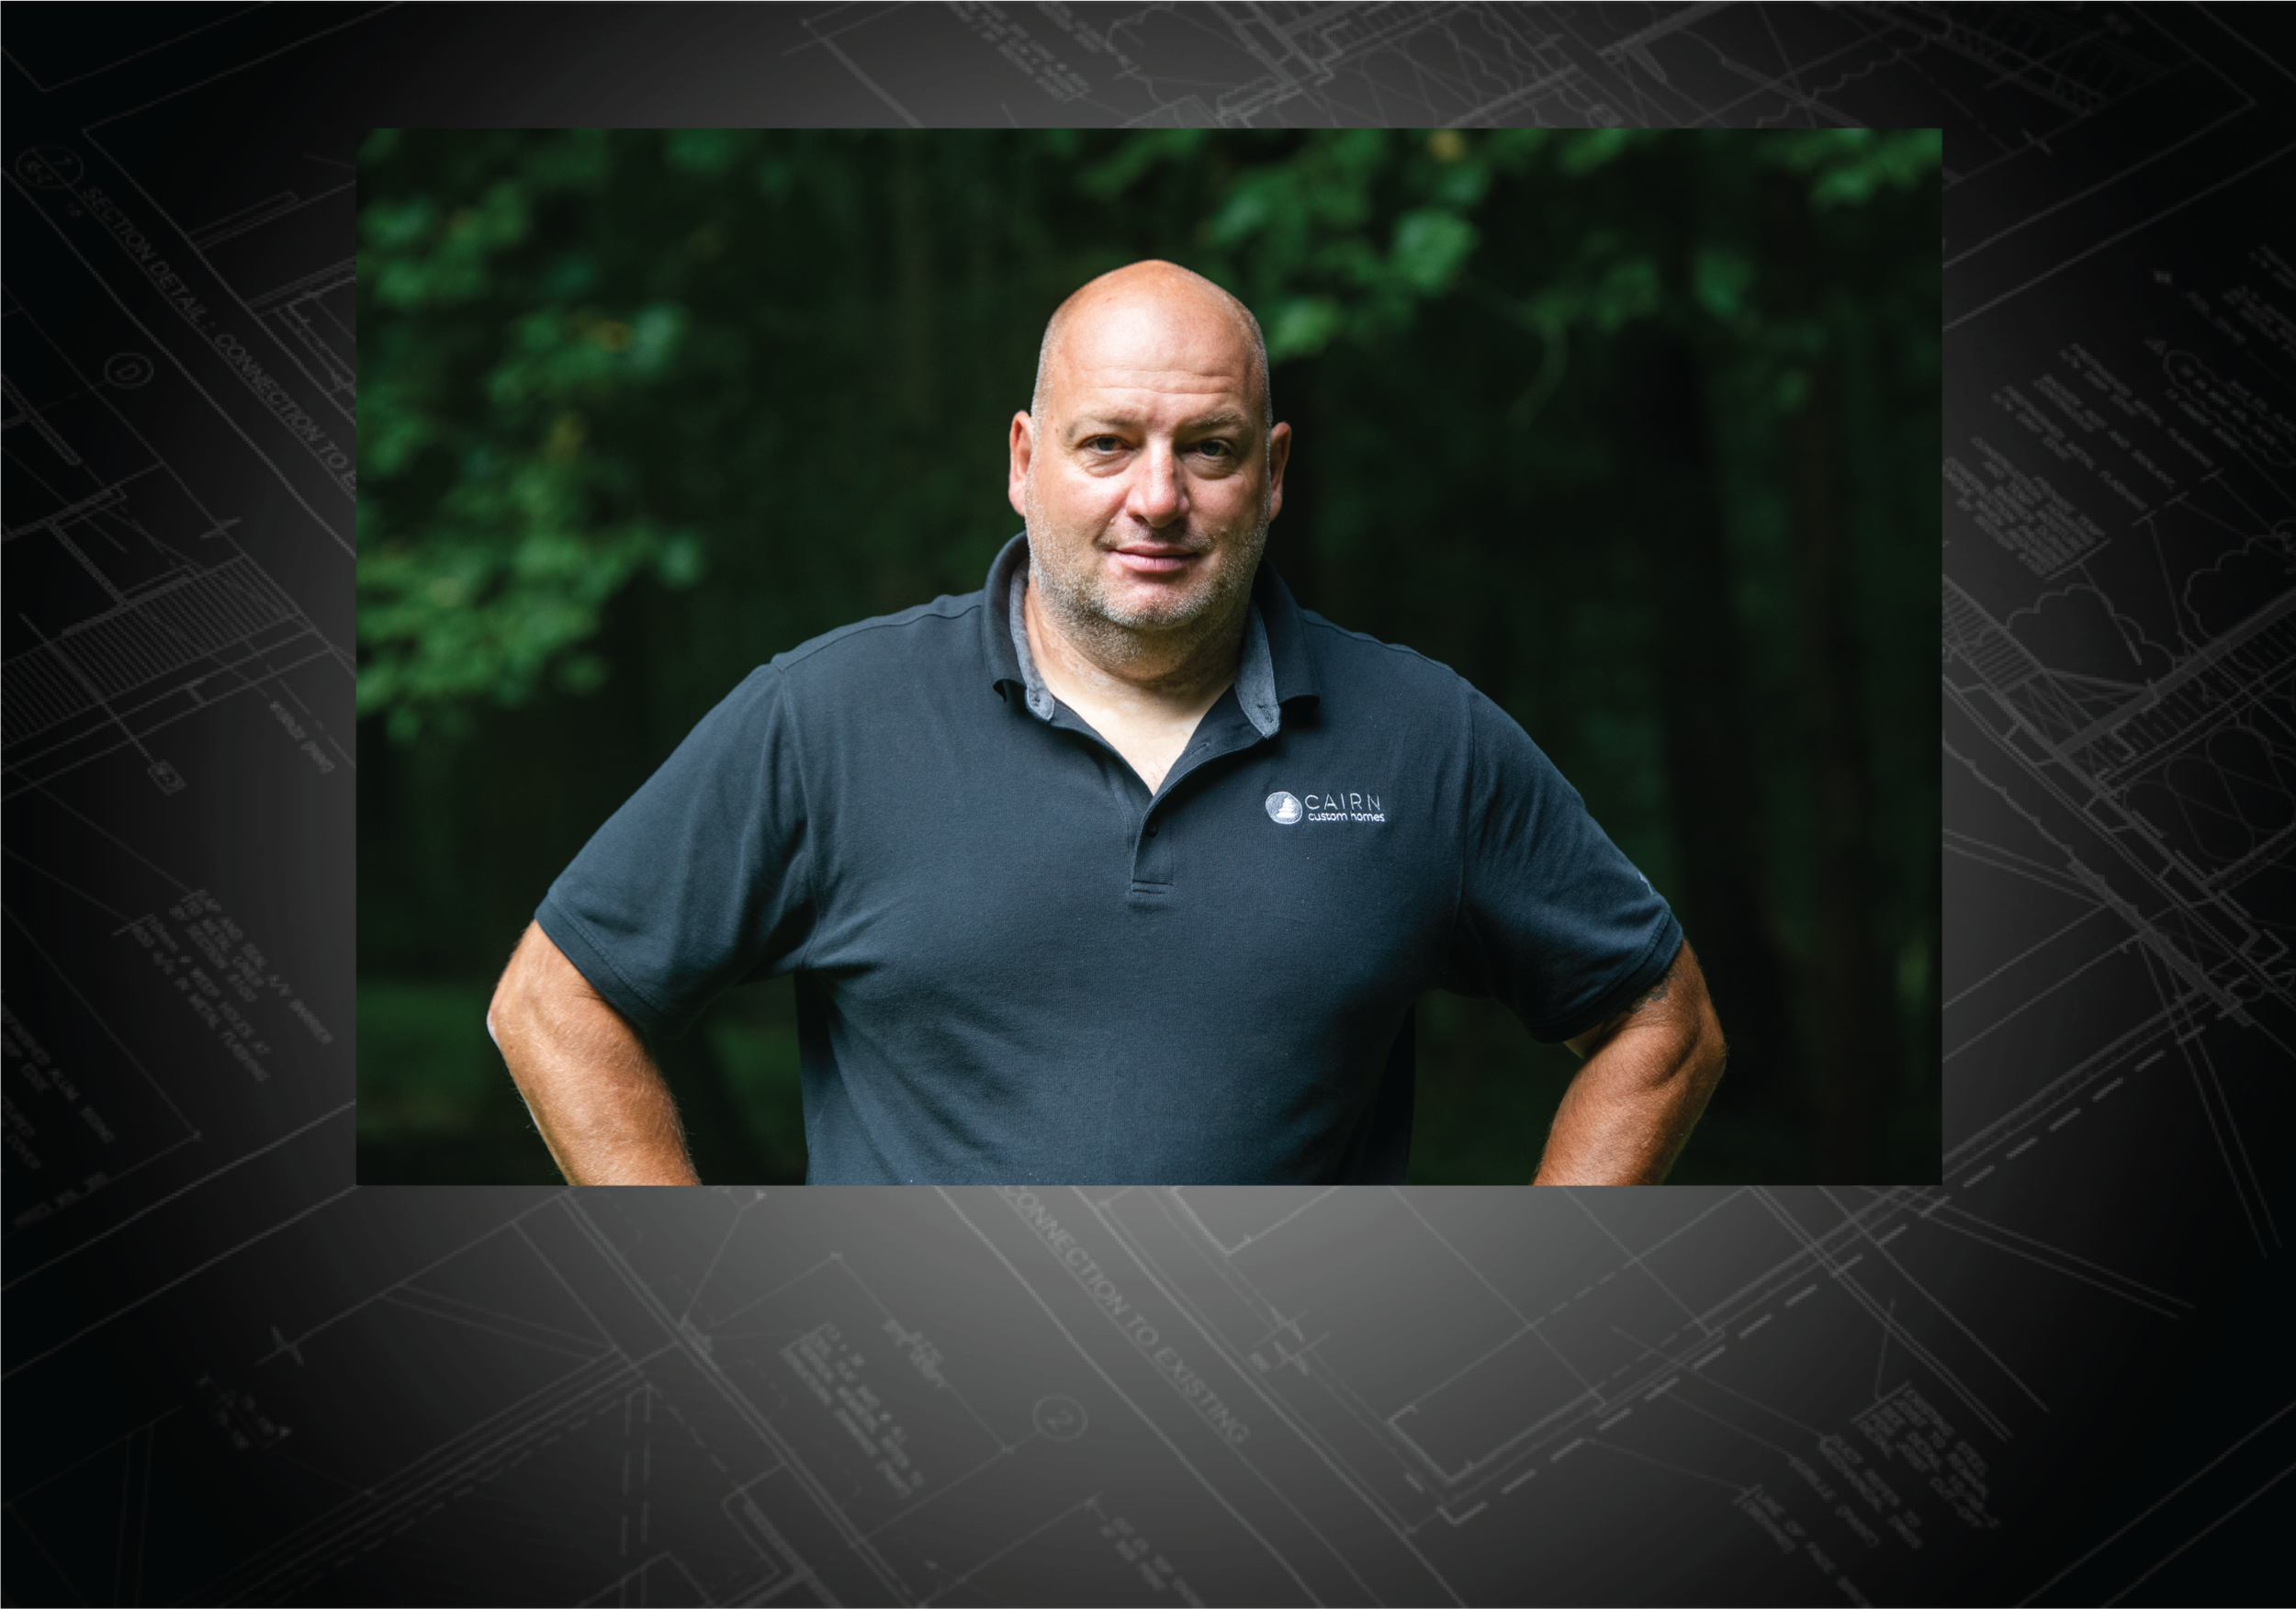 Jeff Ridgely, Project Manager  Jeff has over 18 years in the construction industry, a majority of that time spent as a Project Manager, overseeing every aspect of the building process. He understands the complexities and extreme level of detail that go into constructing a truly unique home, and has a proven track record of delivering a high quality product while maintaining a fluid construction program to keep the job on schedule. Jeff personally meets every client on-site and addresses construction questions directly with buyers.  Jeff currently resides in Walkersville, MD with his family. Jeff is an avid sports fan and cheers on the side lines of his daughter's lacrosse games every chance he can get.